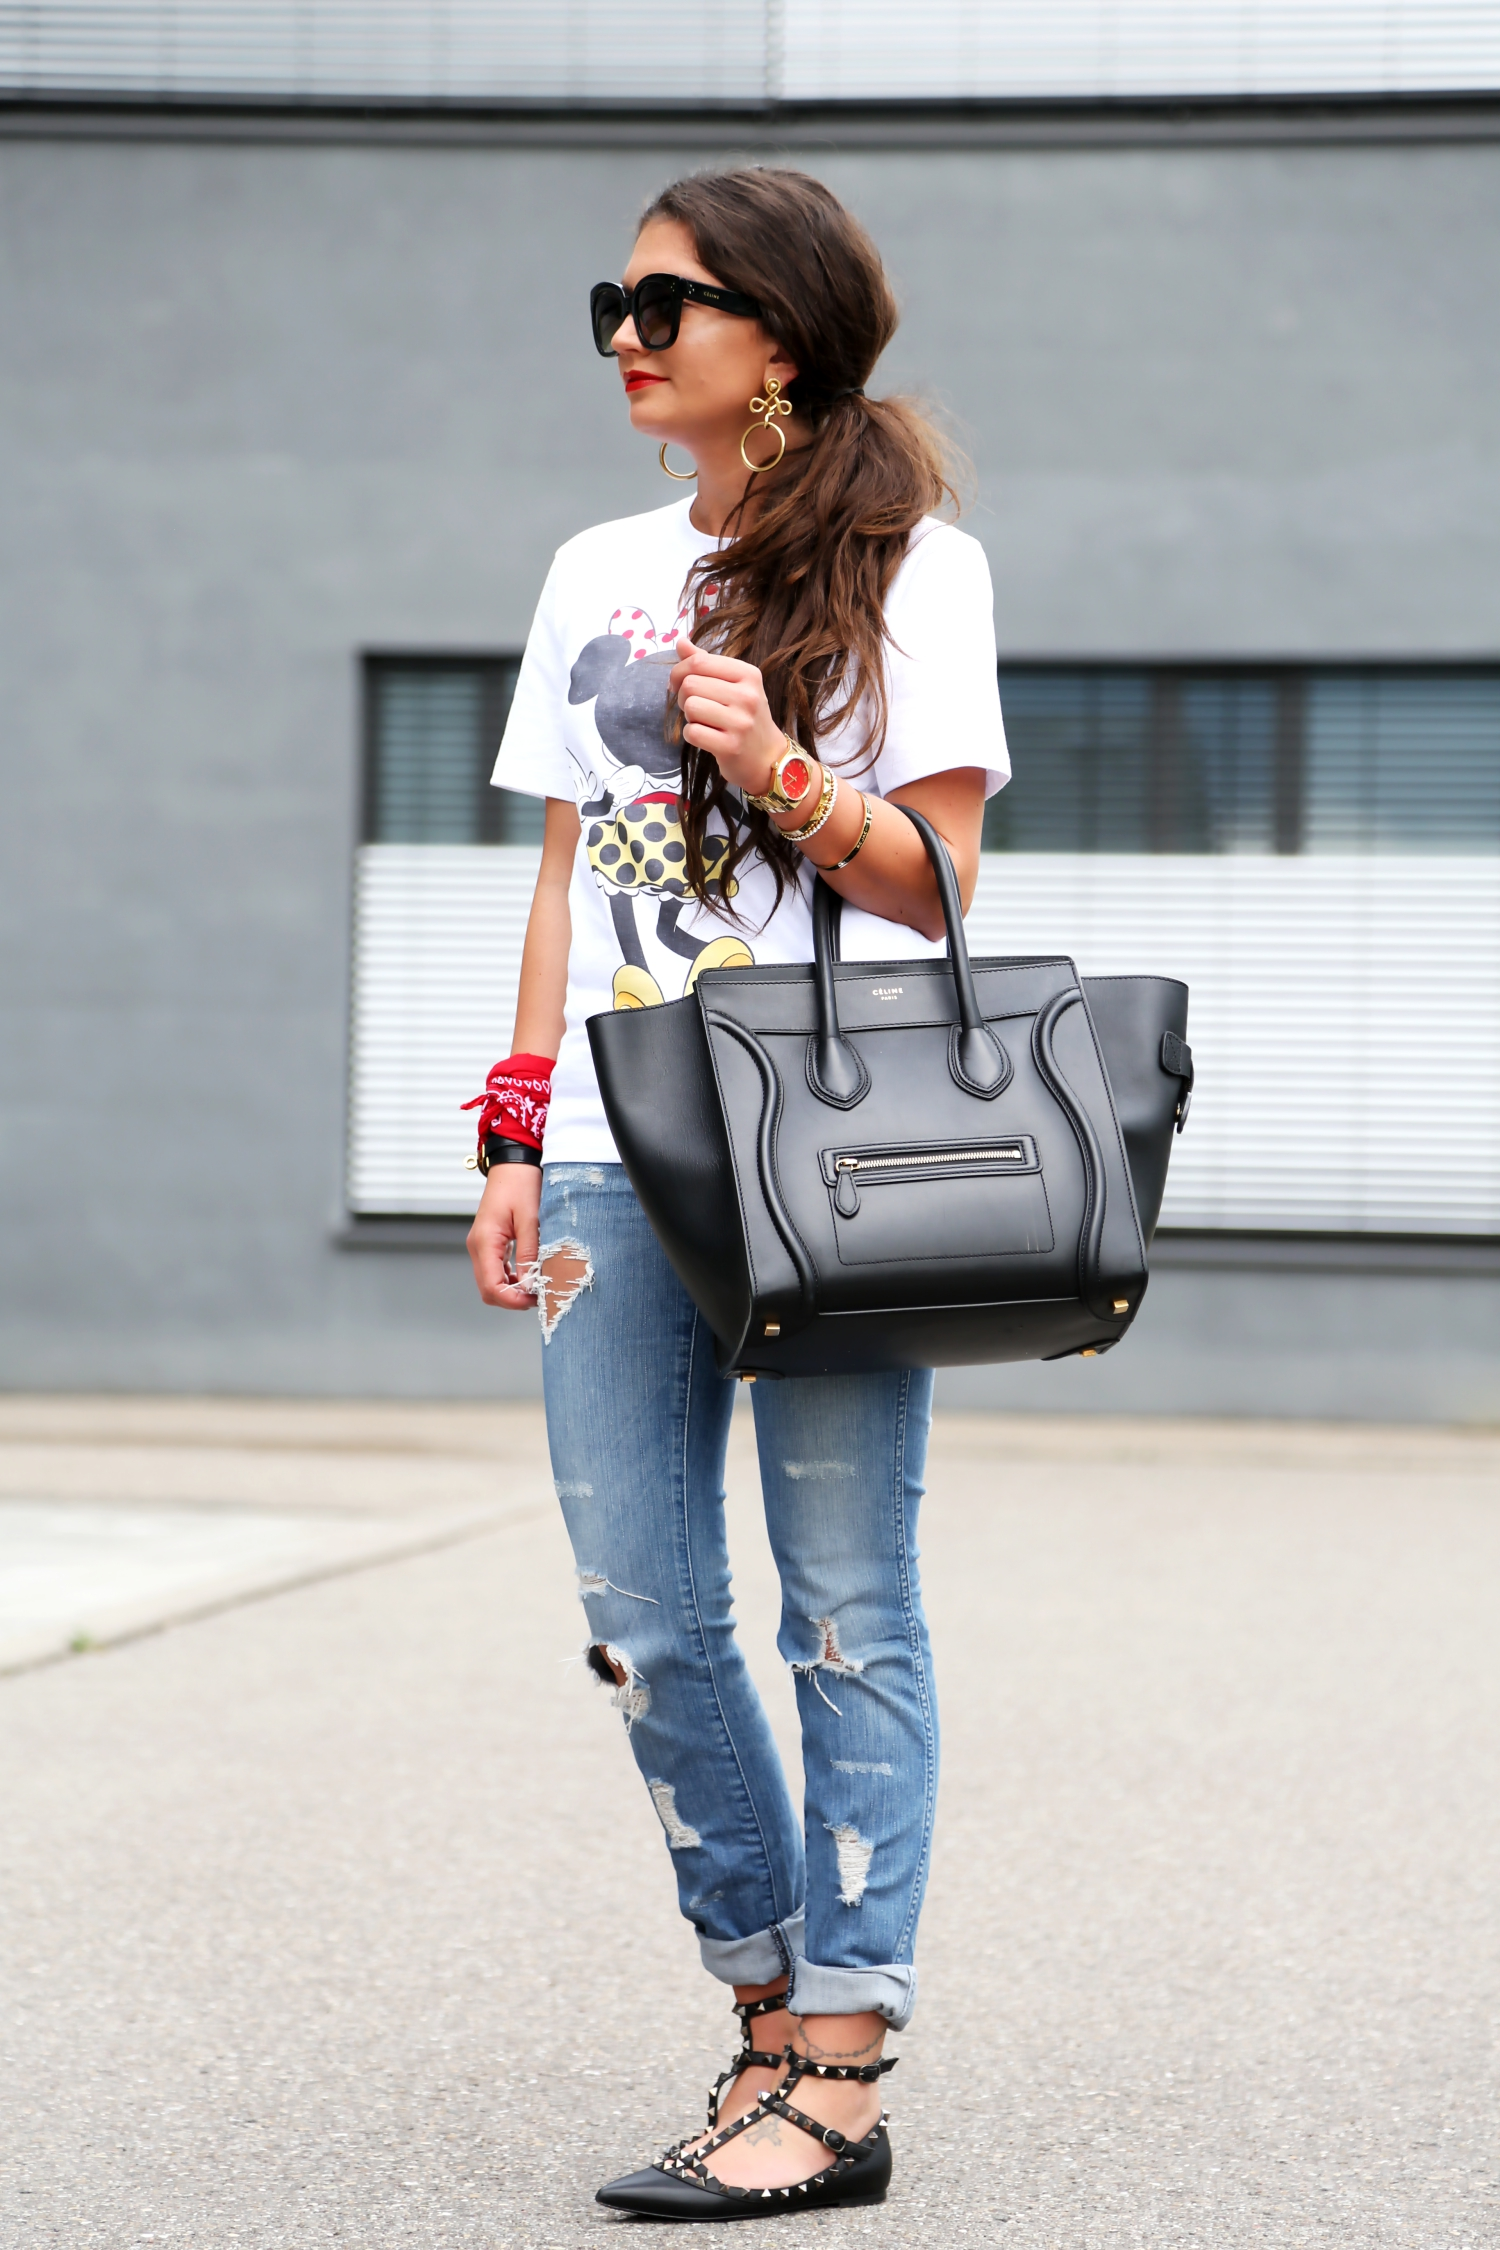 Bettwäsche H Und M That Minnie Mouse Shirt Victoria Beckham X Disney